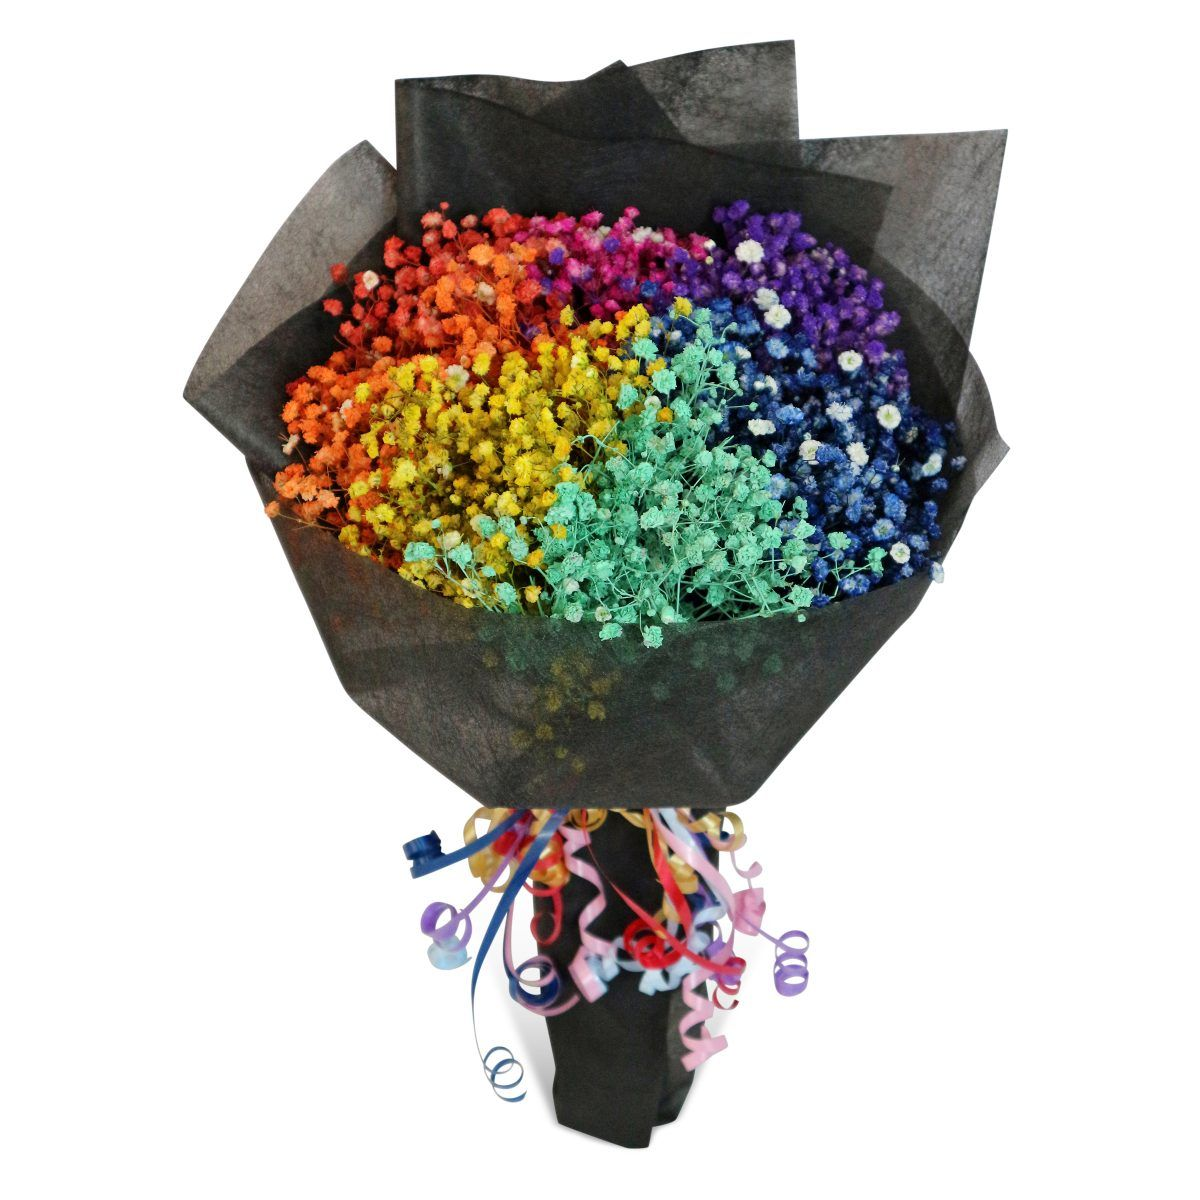 Rainbow Baby S Breath 1 Flora Moments Online Florist Singapore Express Flower Delivery Flowers Bouquet Gift Babys Breath Rainbow Bouquet